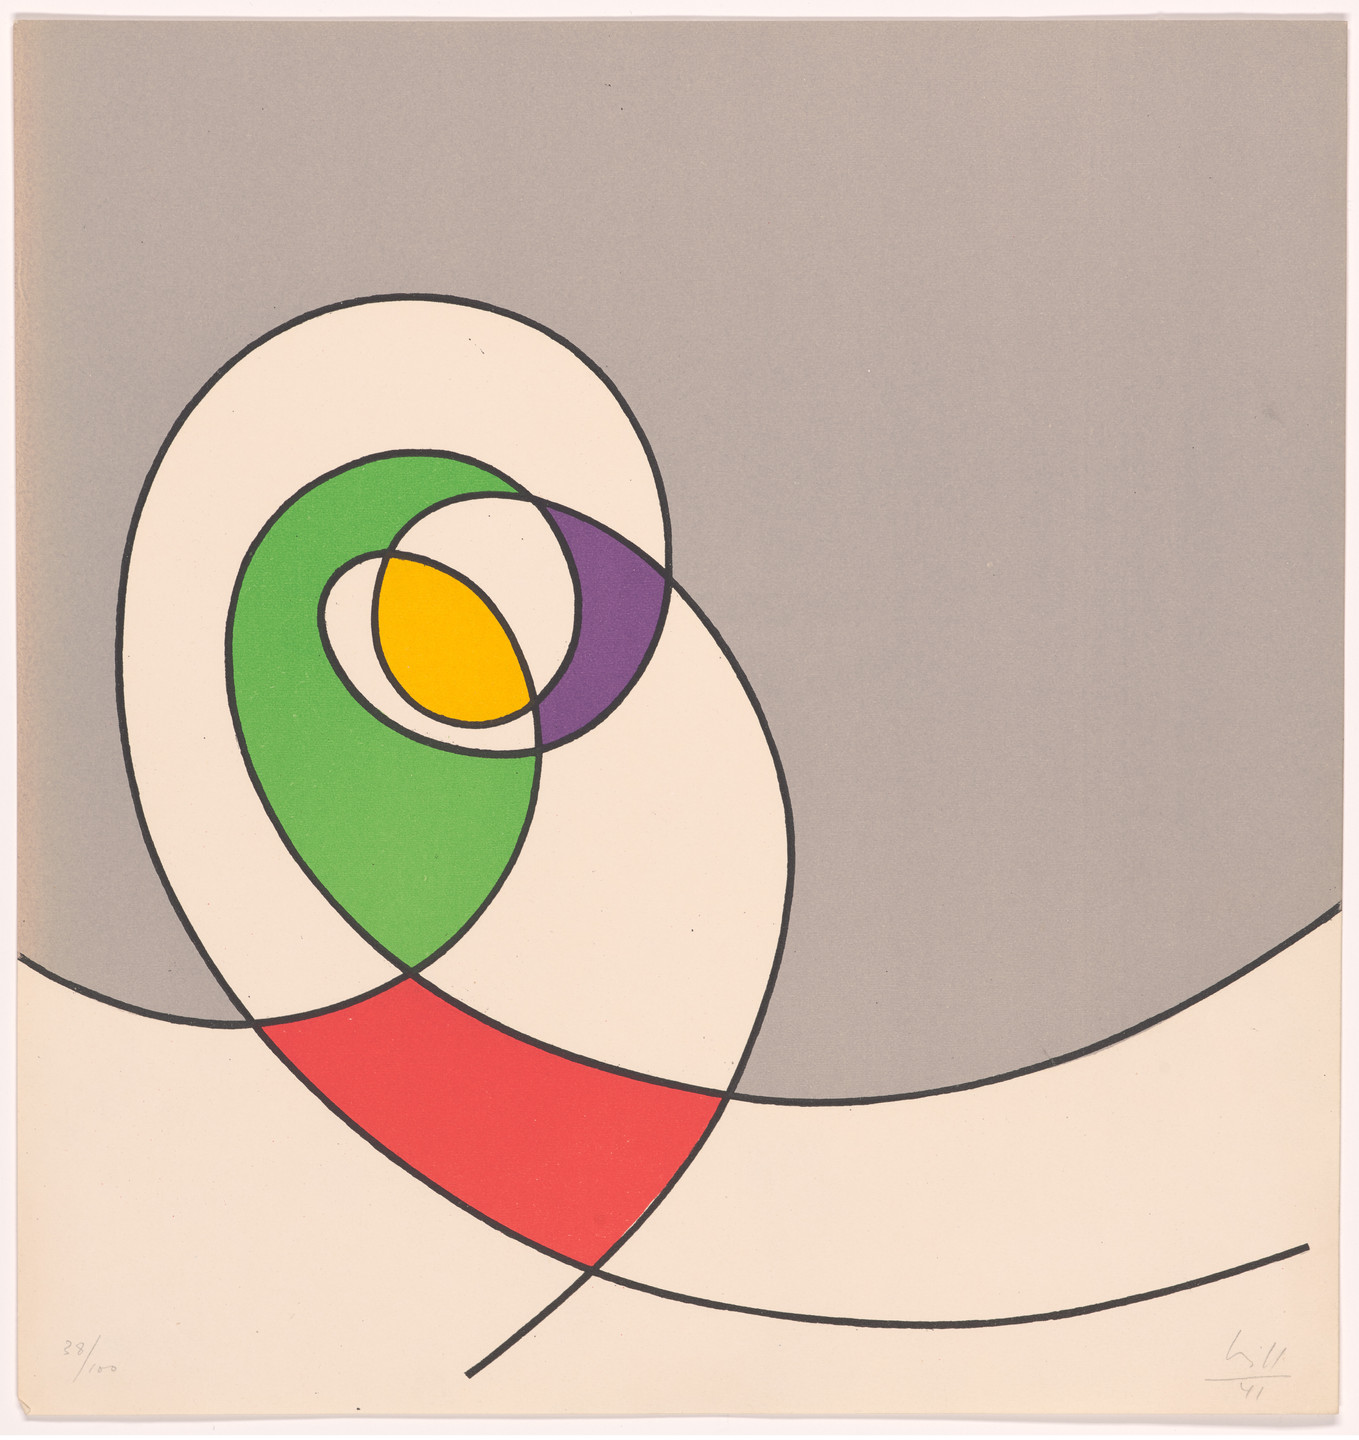 Max Bill. Plate (folio 6) from 5 Constructionen + 5 Compositionen. 1941